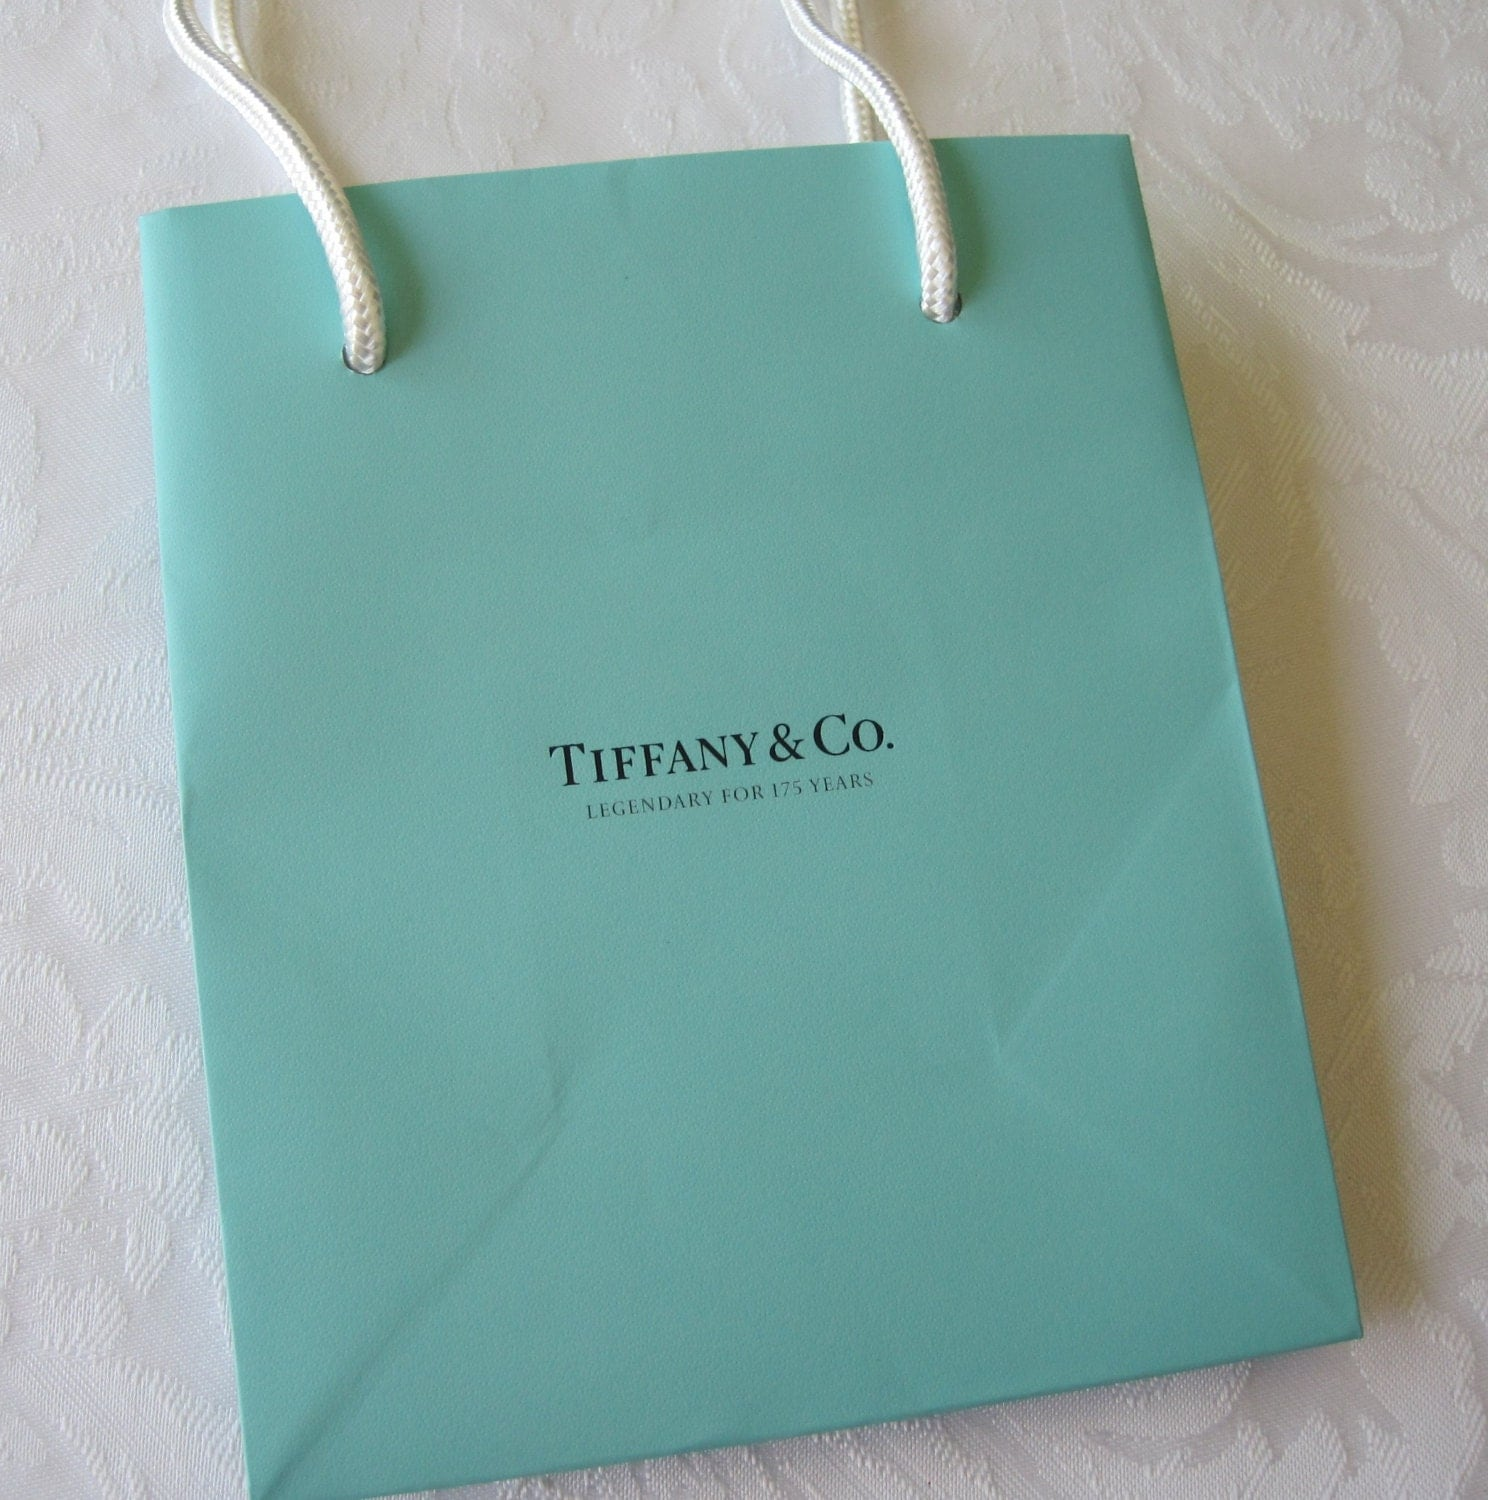 Tiffany And Co Gift Bag 5 X 6